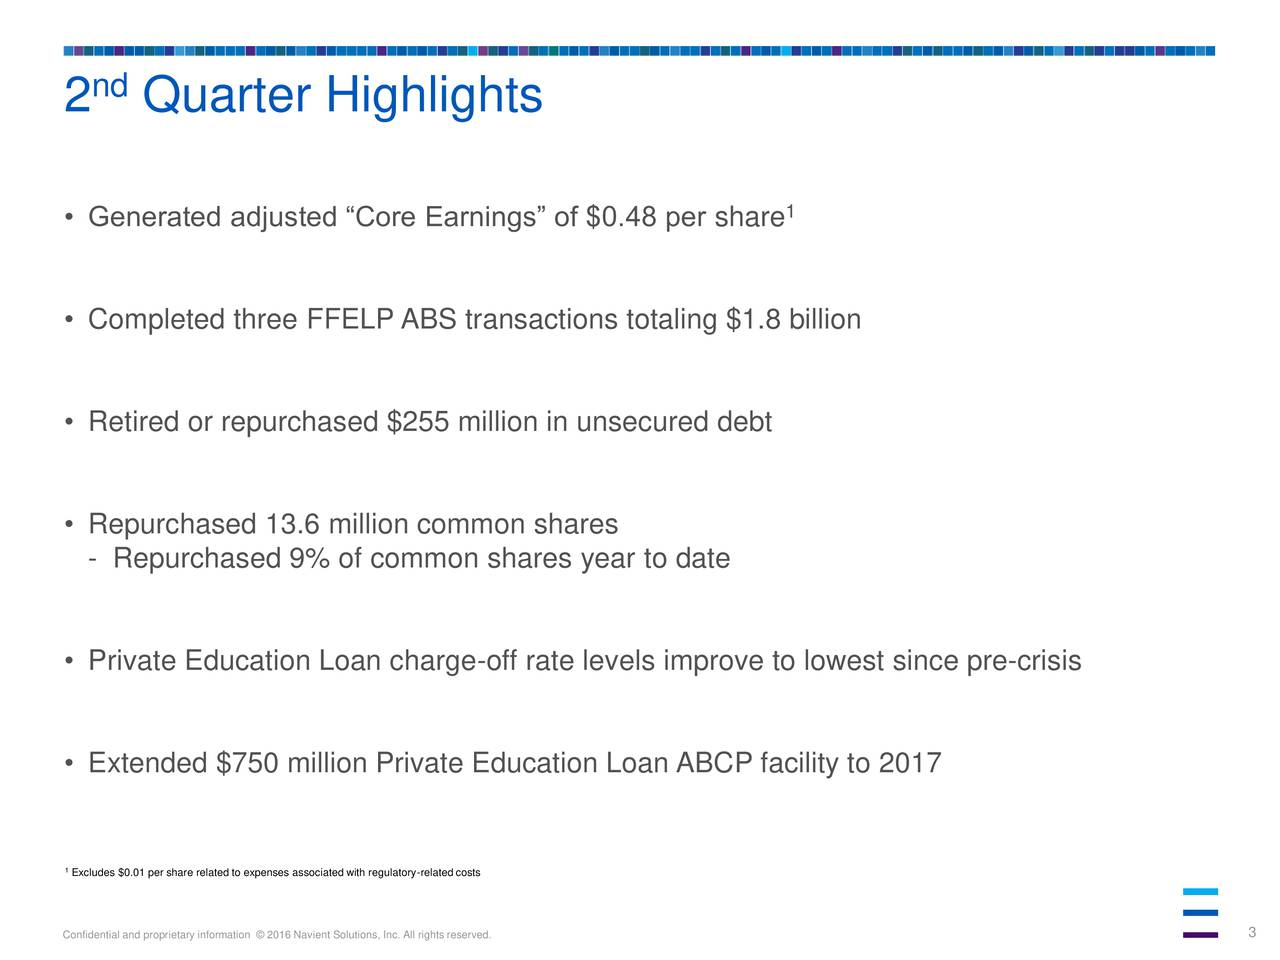 Generated adjusted Core Earnings of $0.48 per share 1 Completed three FFELP ABS transactions totaling $1.8 billion Retired or repurchased $255 million in unsecured debt Repurchased 13.6 million common shares - Repurchased 9% of common shares year to date Private Education Loan charge-off rate levels improve to lowest since pre-crisis Extended $750 million Private Education Loan ABCP facility to 2017 1Excludes $0.01 per share related to expenses associated with regulatory-related costs Confidential and proprietary information  2016 Navient Solutions, Inc. All rights reserved. 3